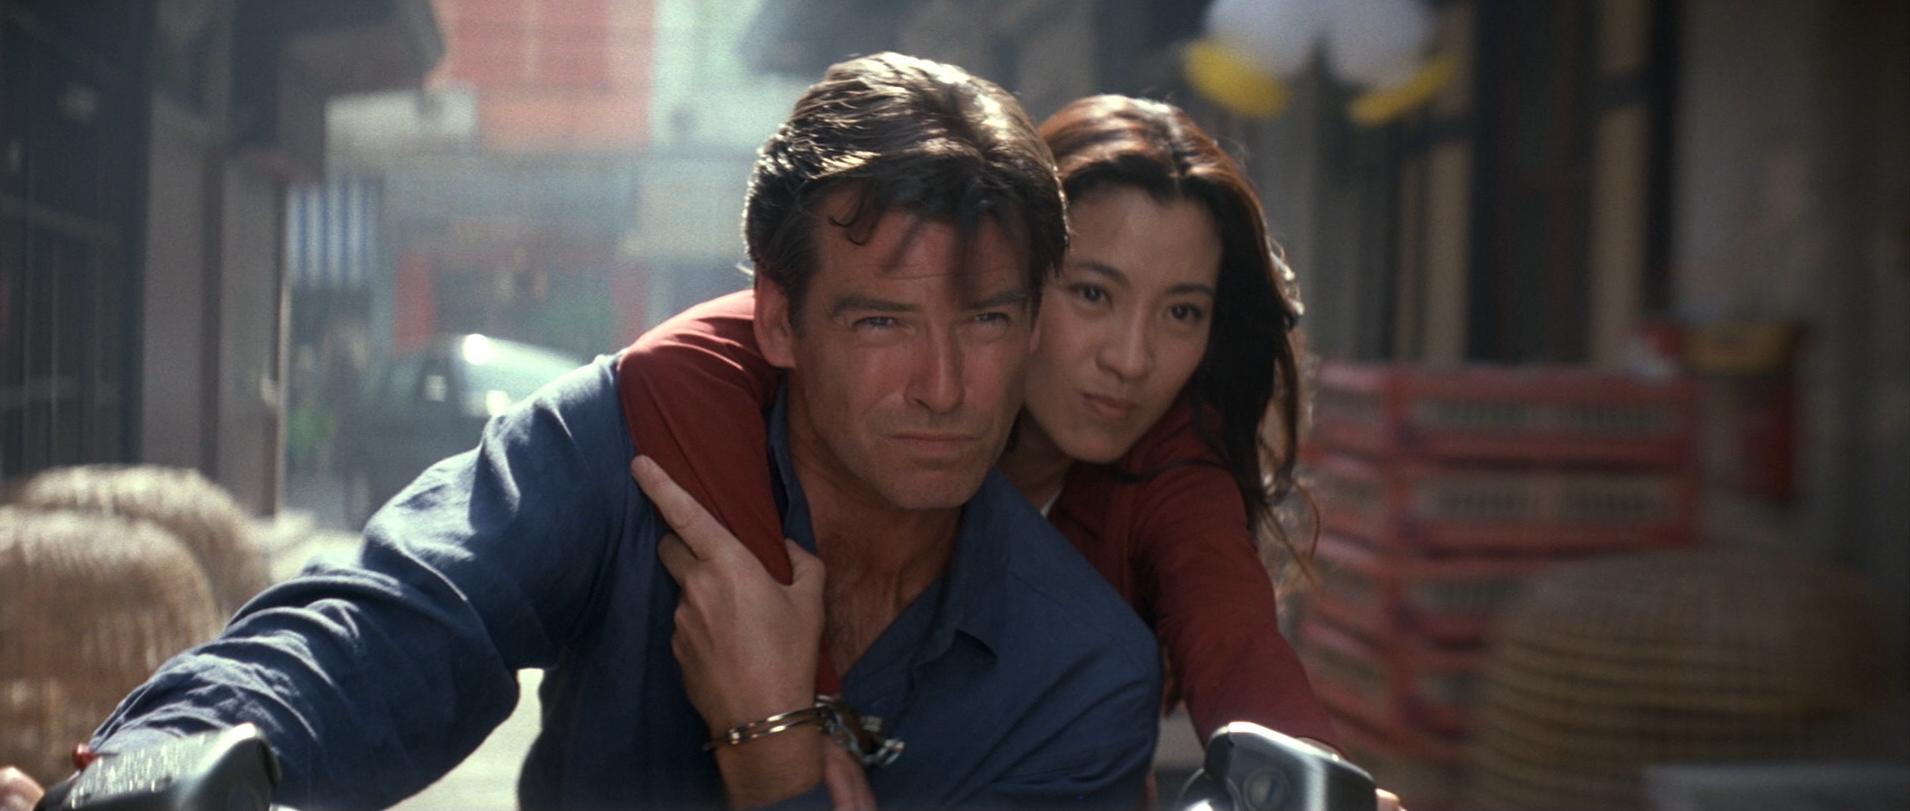 Motorcycle chase - Tomorrow Never Dies